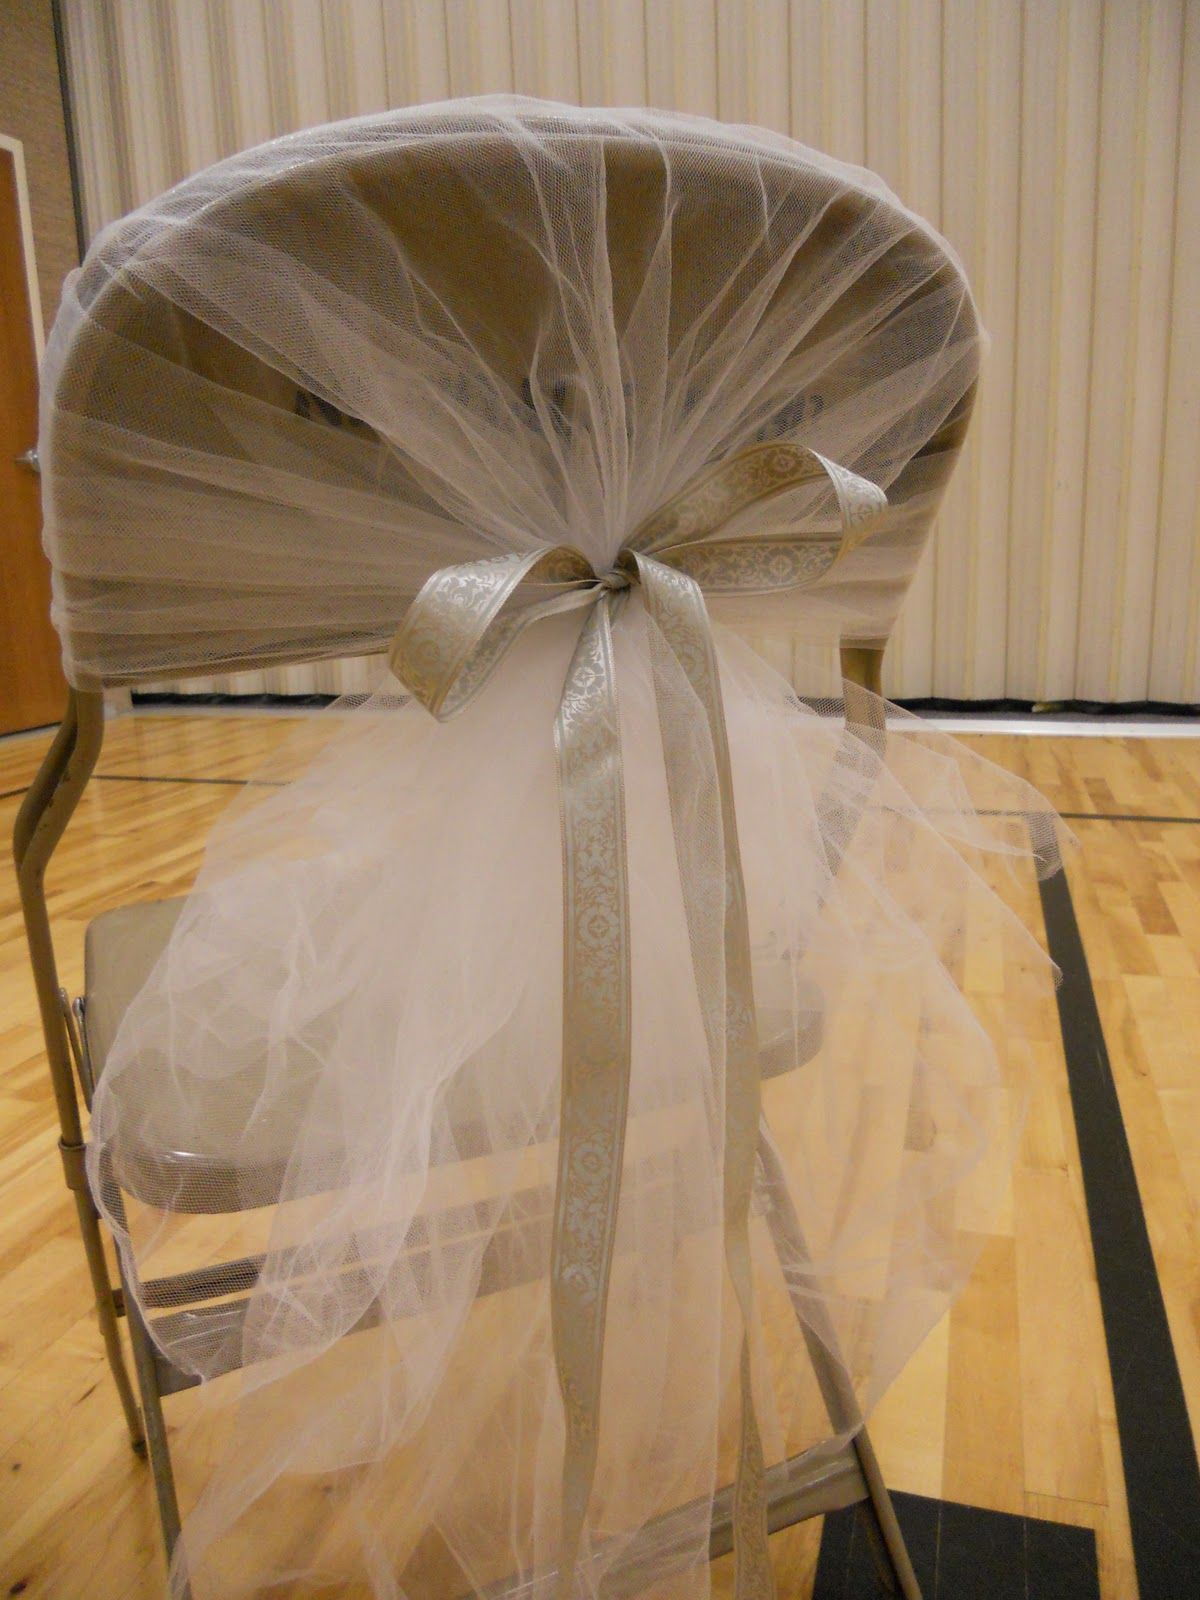 Metal Chair Covers Wedding For Living Room Decorating Hideous Chairs Advice Project Forums